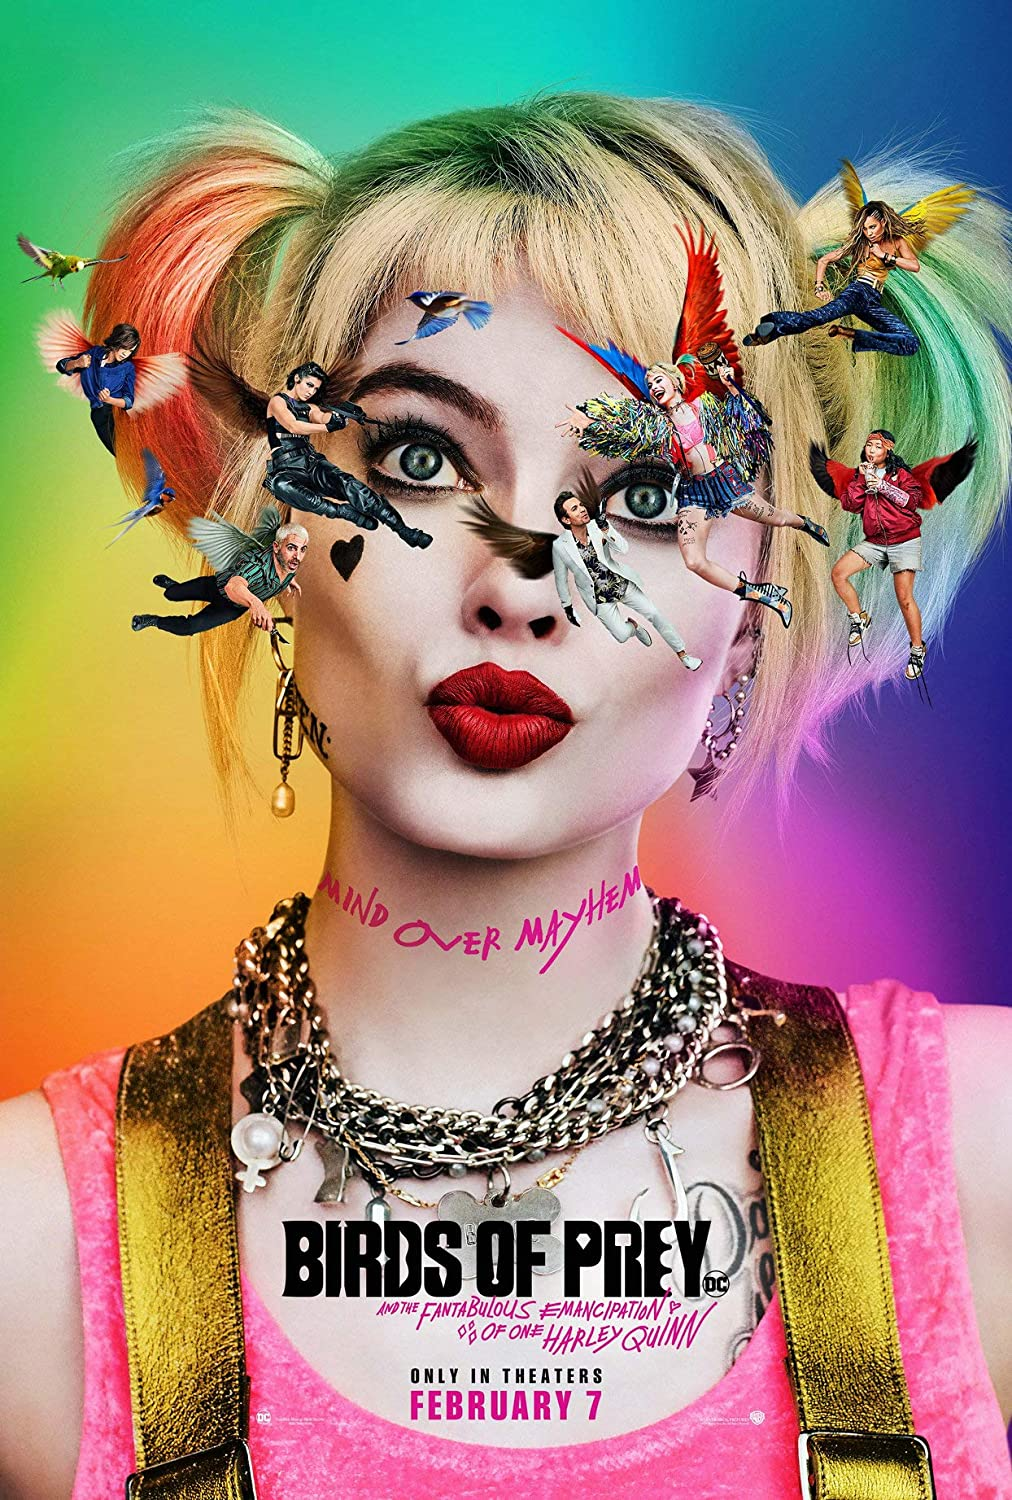 Amazon Com Gzsgwli Birds Of Prey And The Fantabulous Emancipation Of One Harley Quinn 2020 Movie Poster 30x45cm Canvas Posters Prints